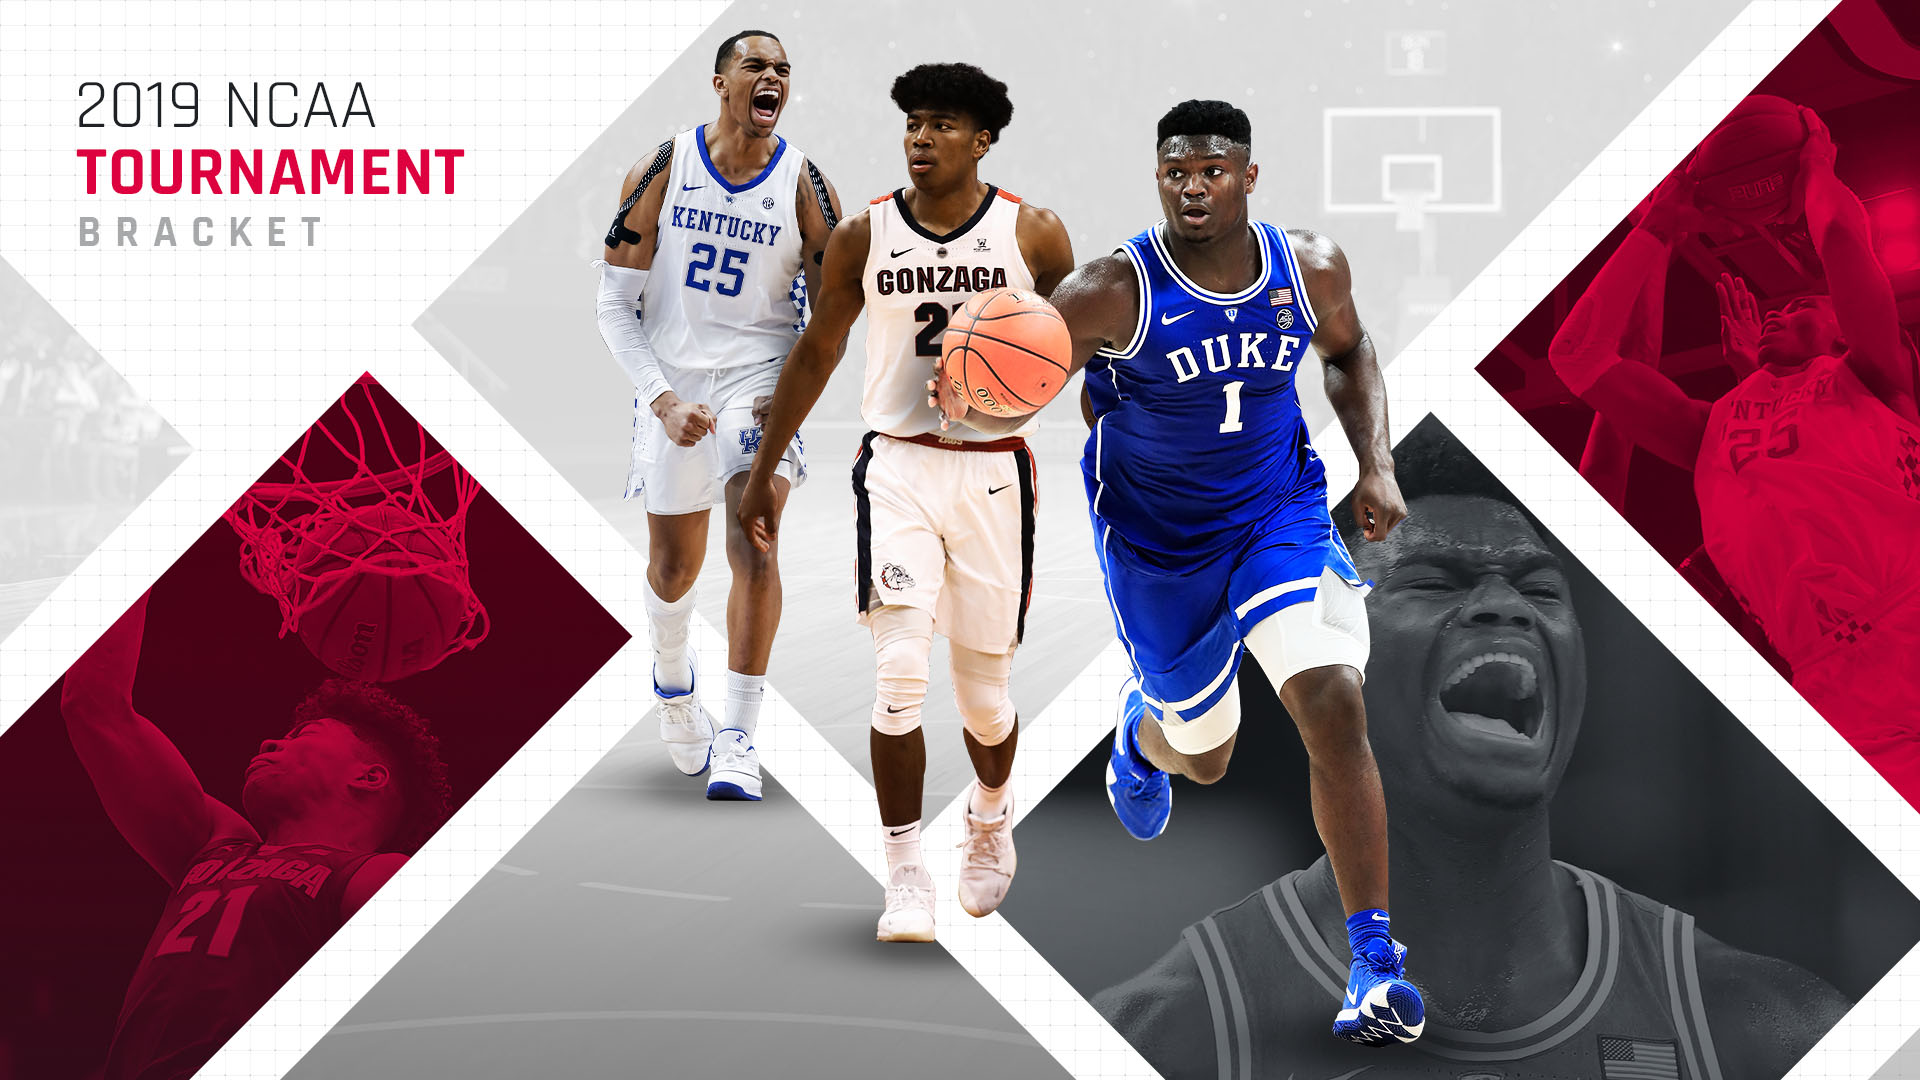 March Madness 2019: Bracket Predictions, NCAA Tournament